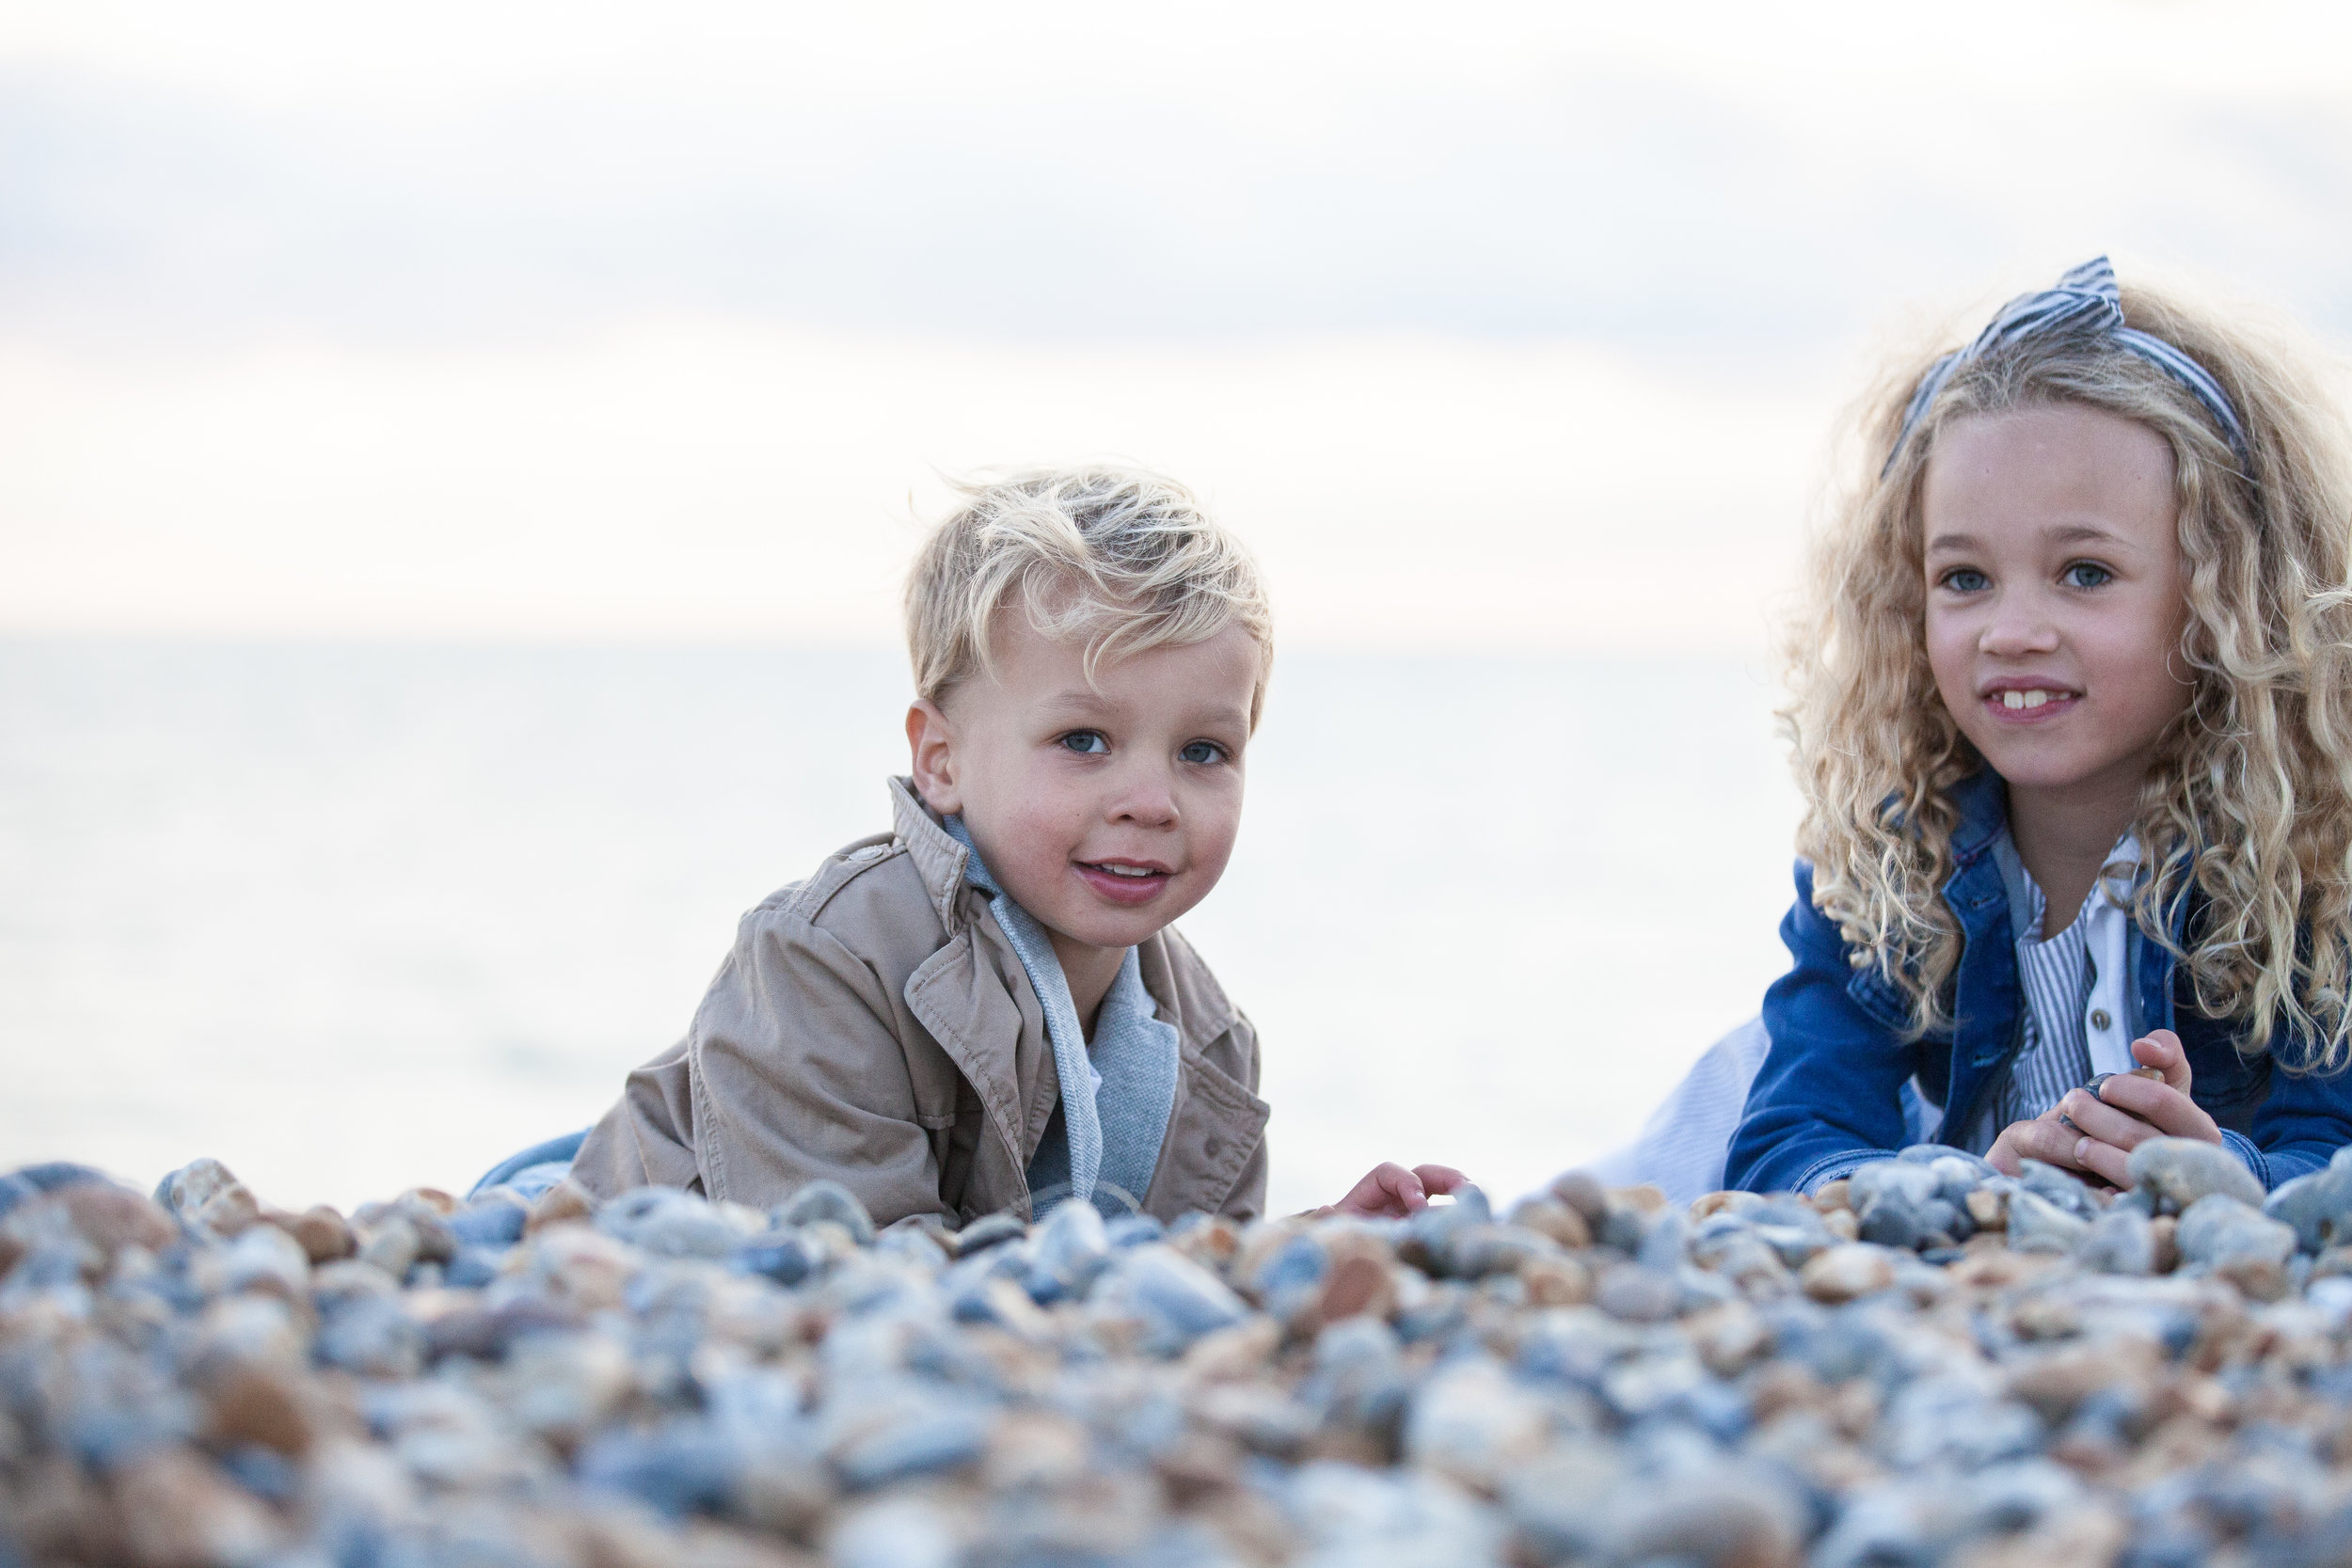 Mini shoot with Ella in Seaford, East Sussex